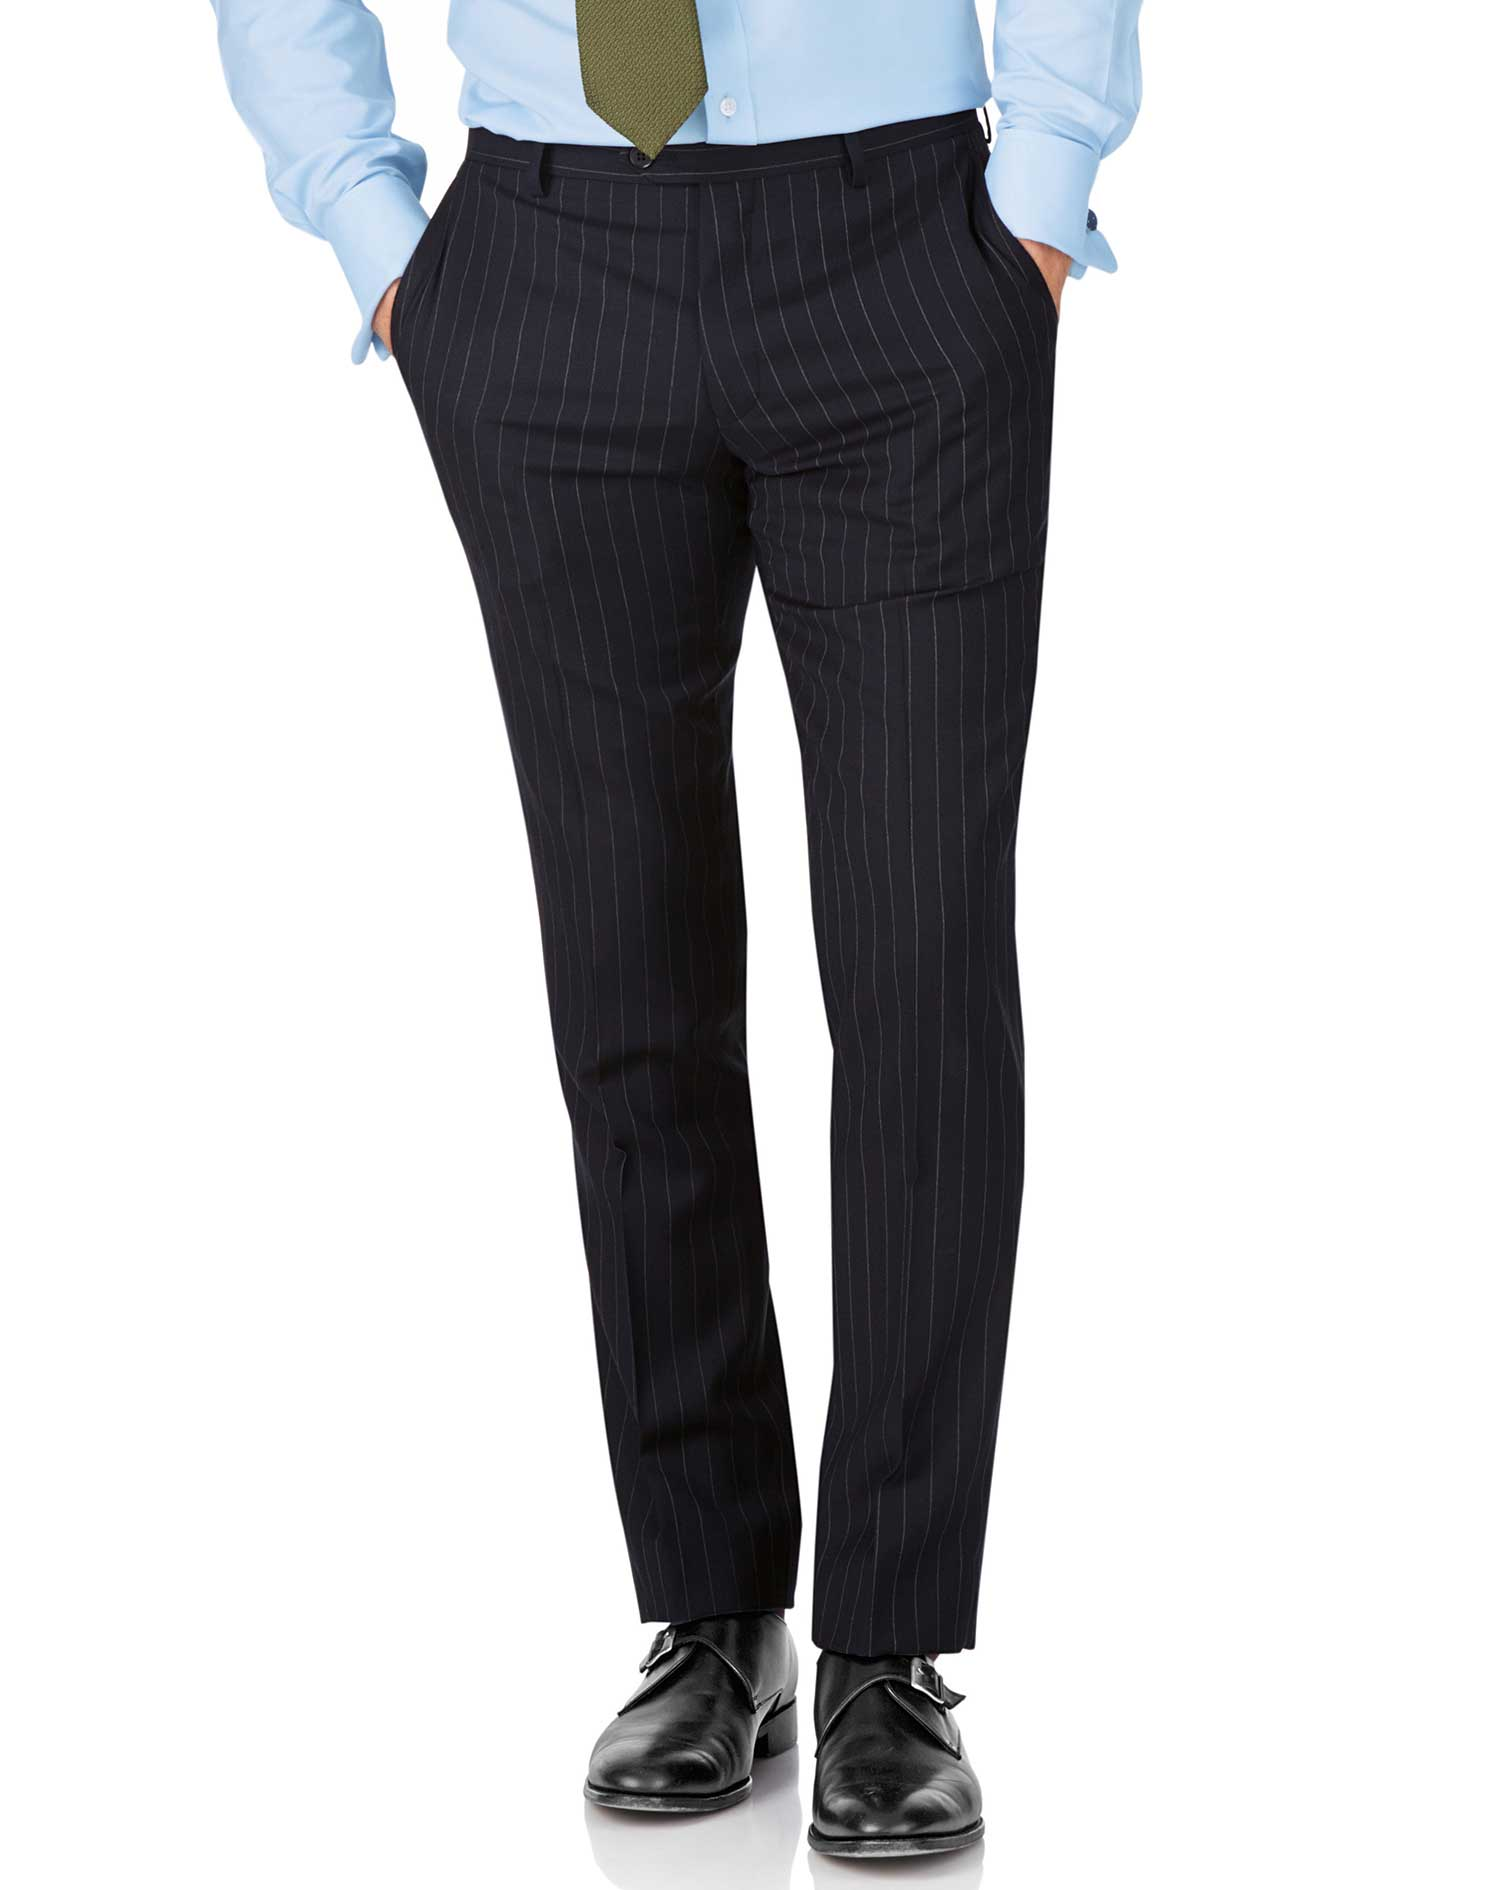 Navy Stripe Slim Fit Twill Business Suit Trousers Size W38 L38 by Charles Tyrwhitt